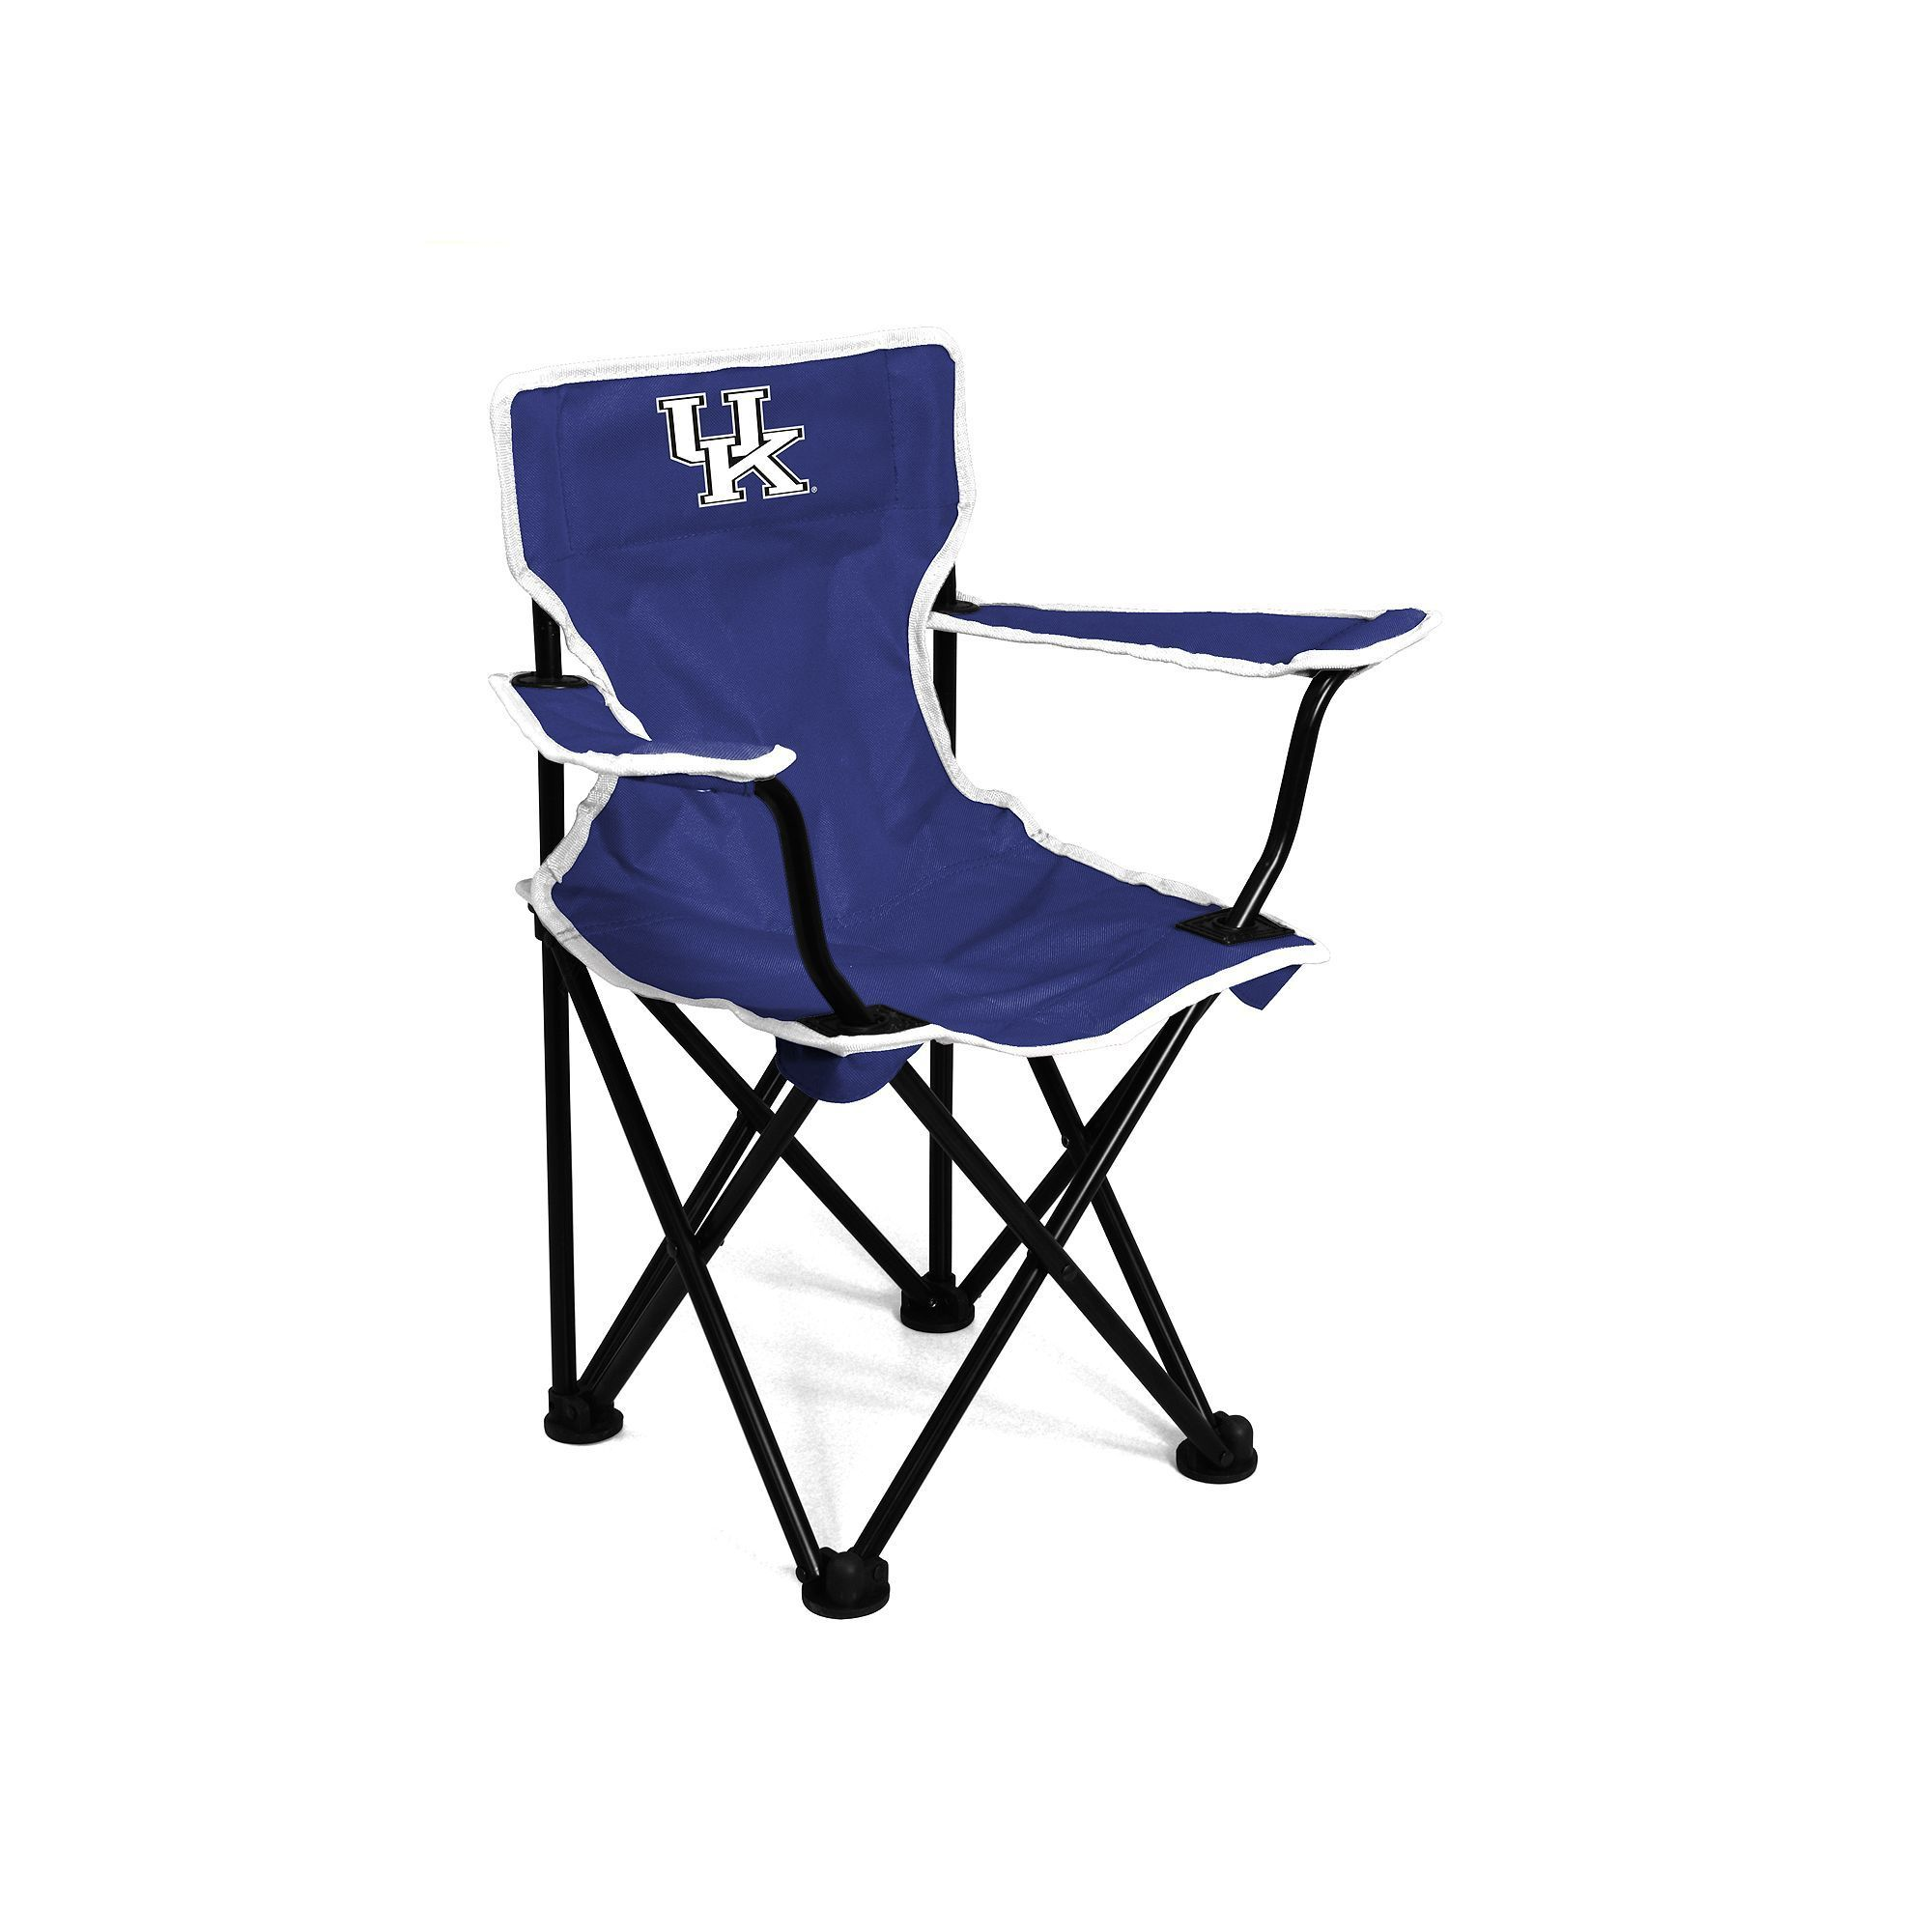 Outdoor Kentucky Wildcats Portable Folding Chair Toddler